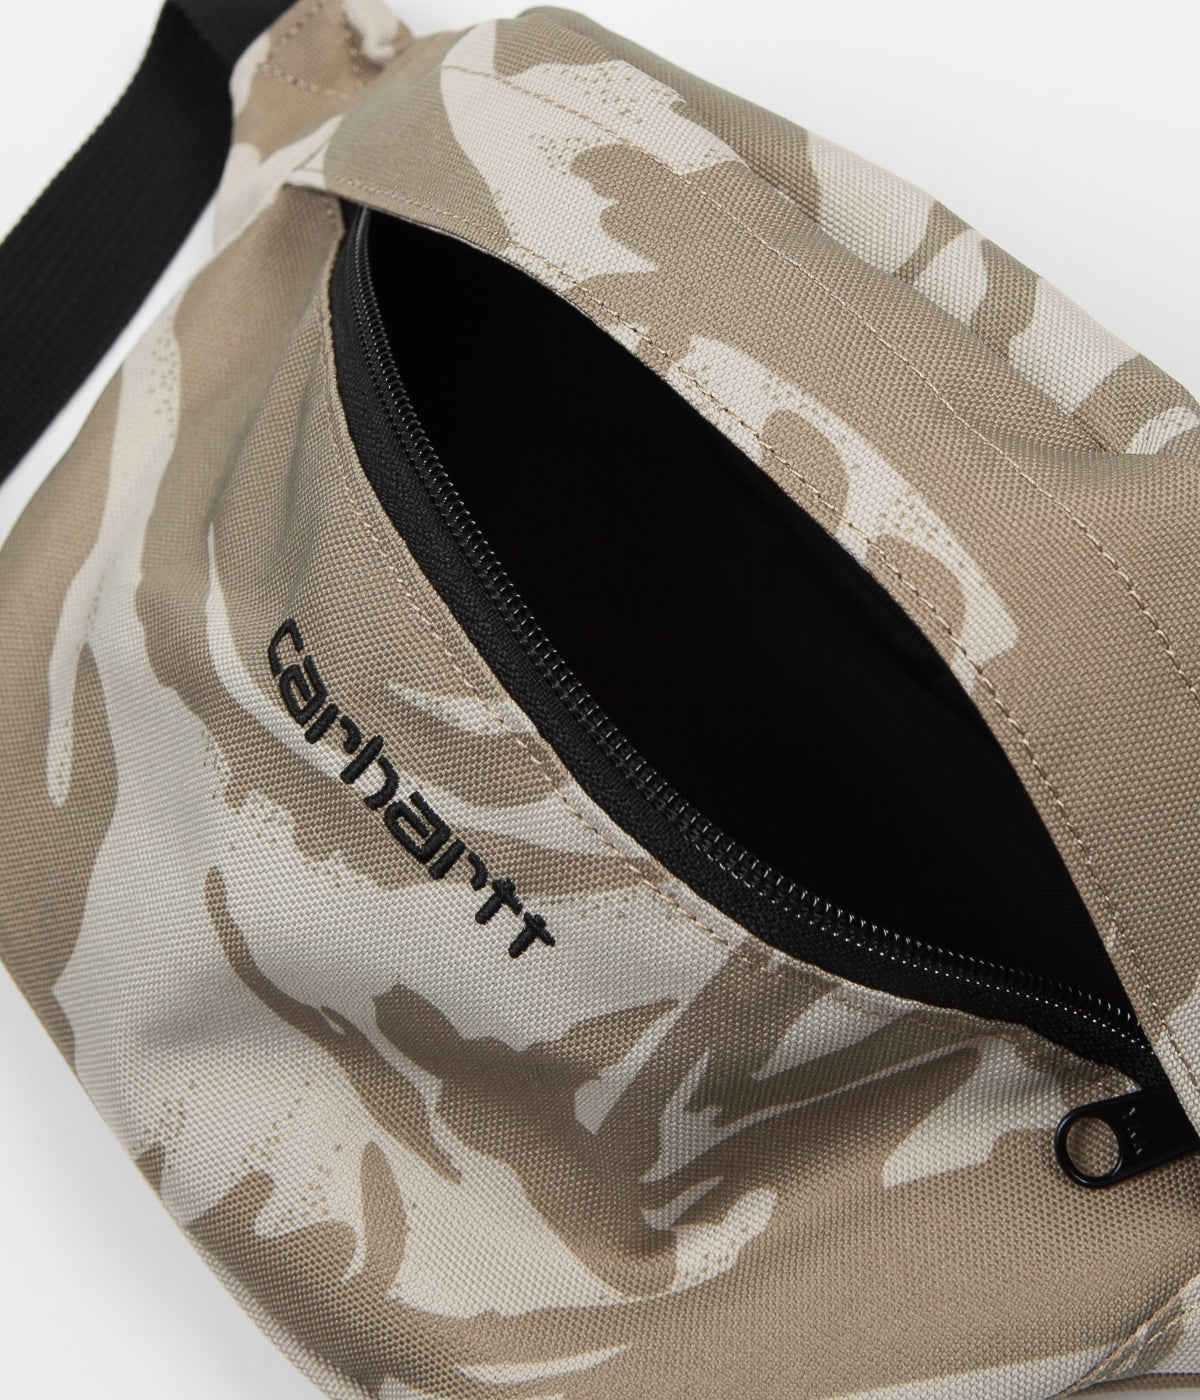 Carhartt Payton Hip Bag - Sandshell / Black